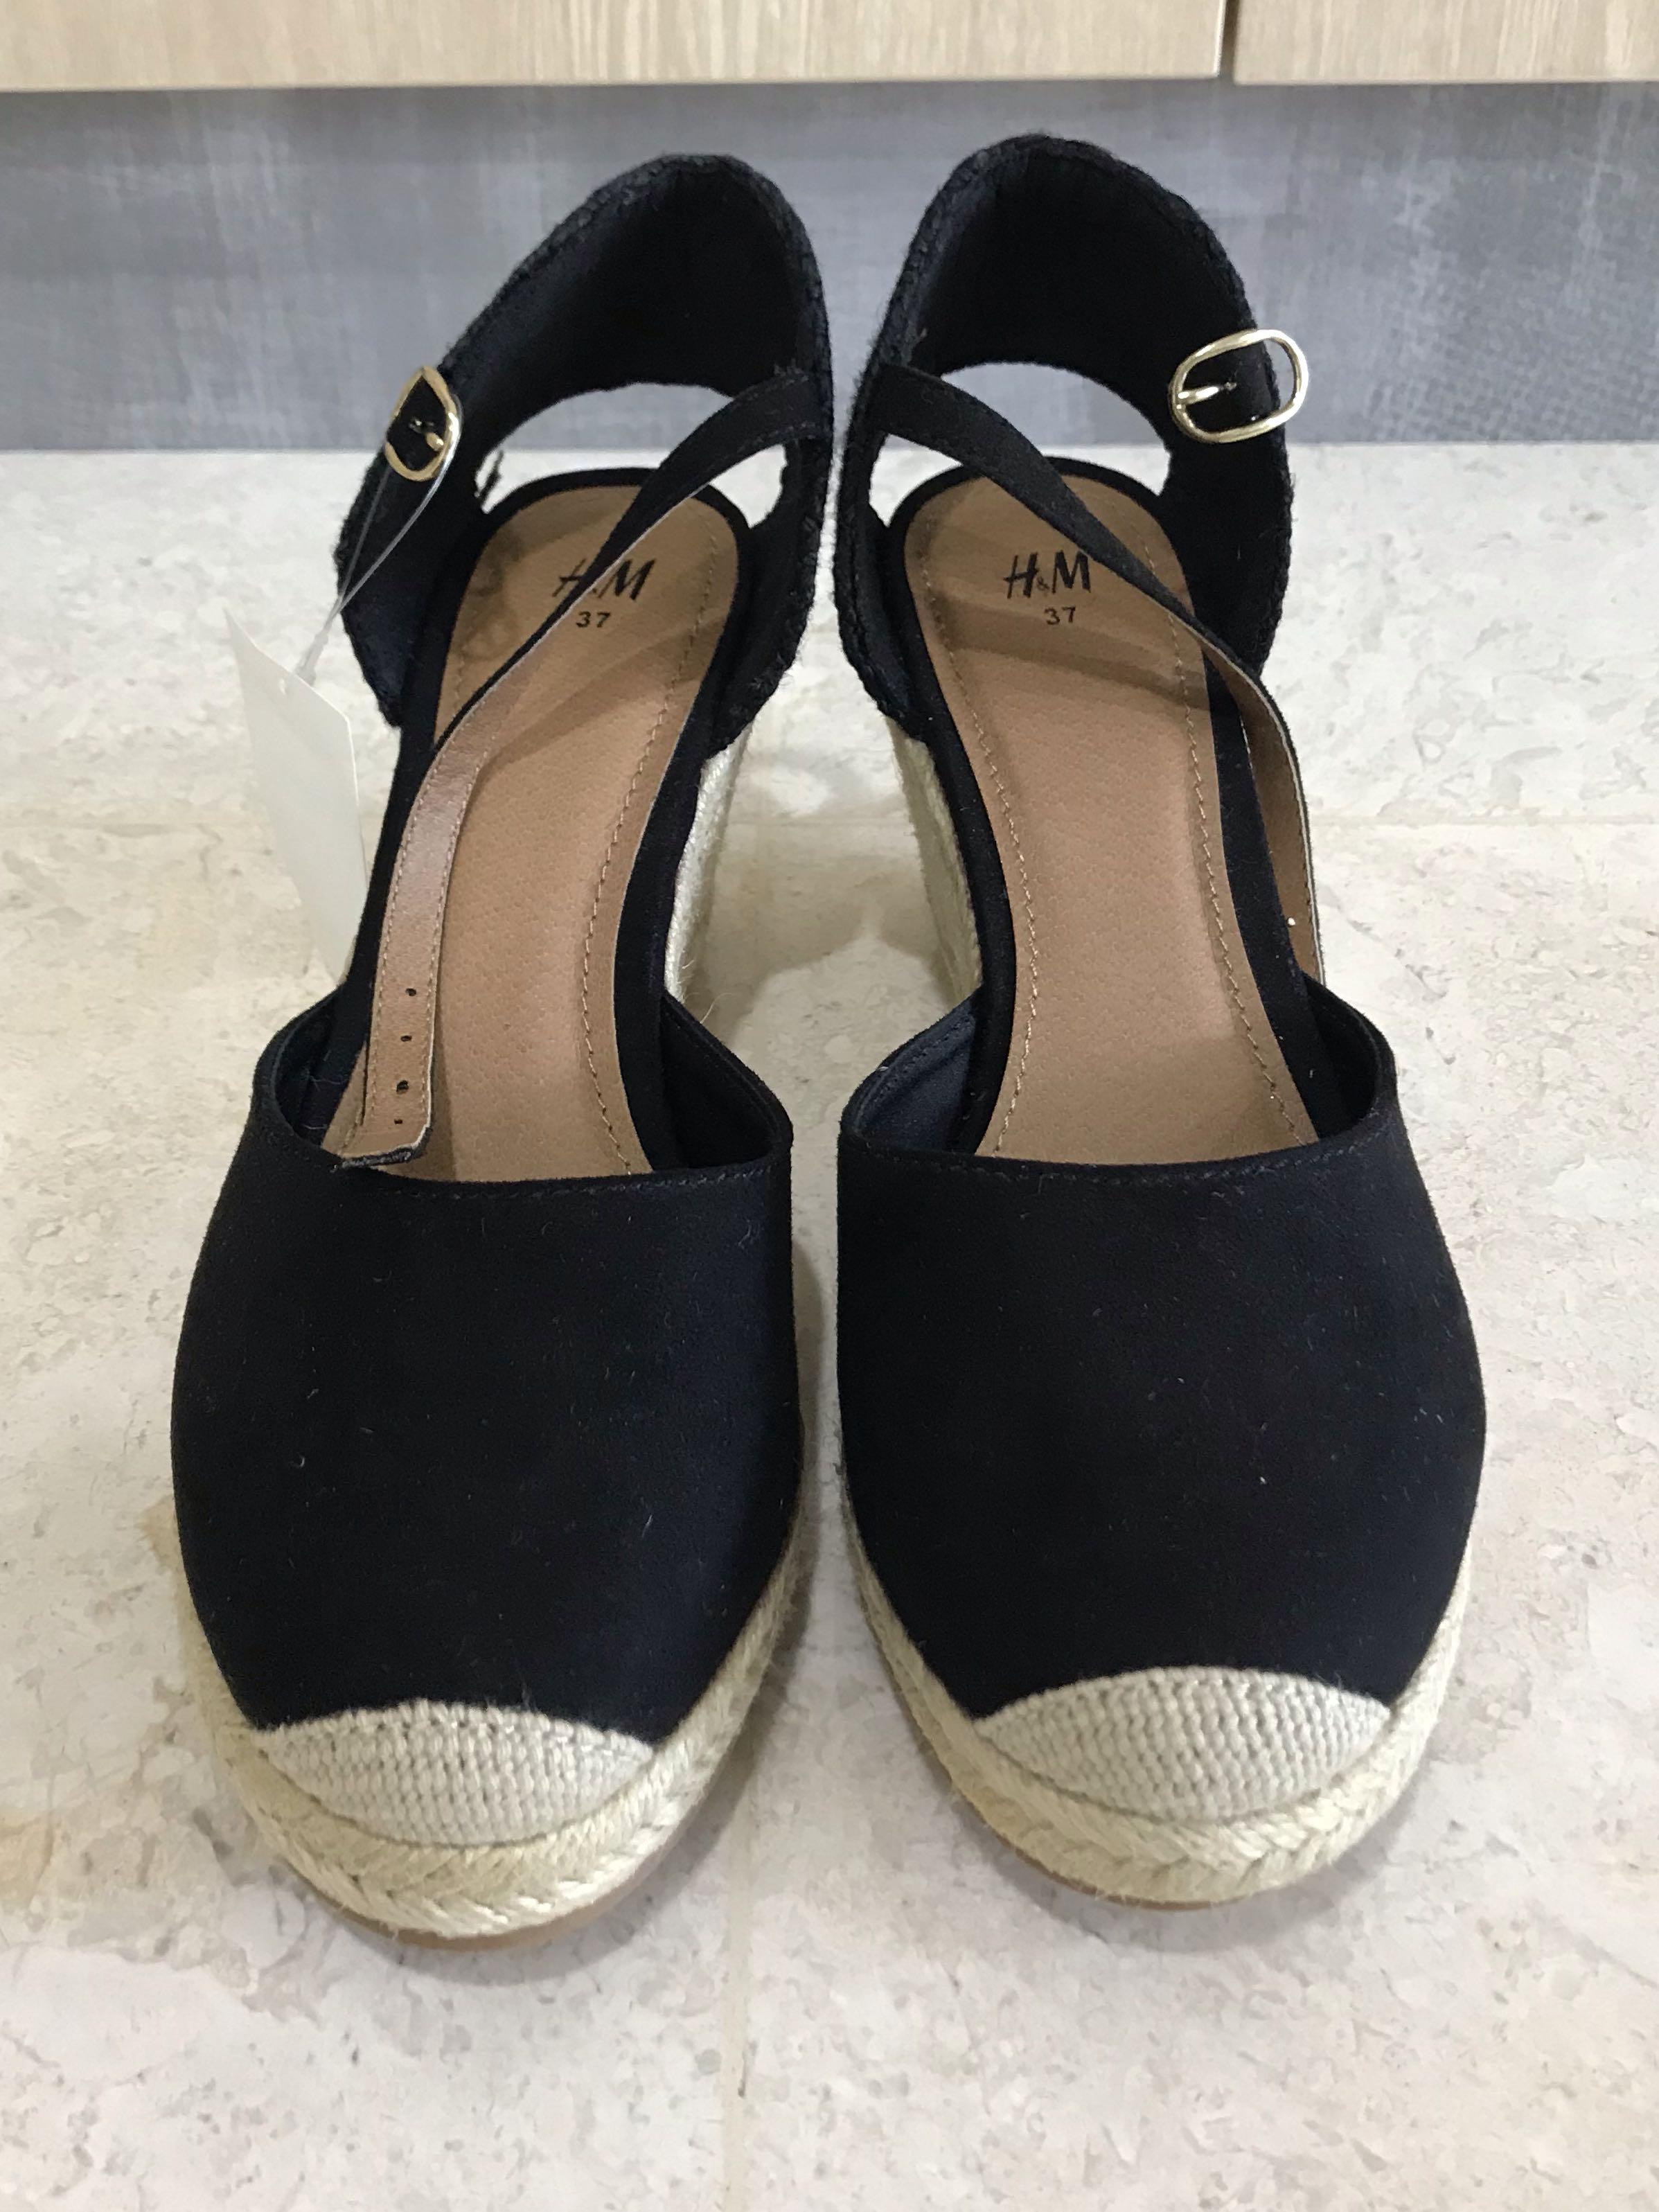 51f591e733 H&M Black Wedges (Size 37), Women's Fashion, Shoes, Heels on Carousell